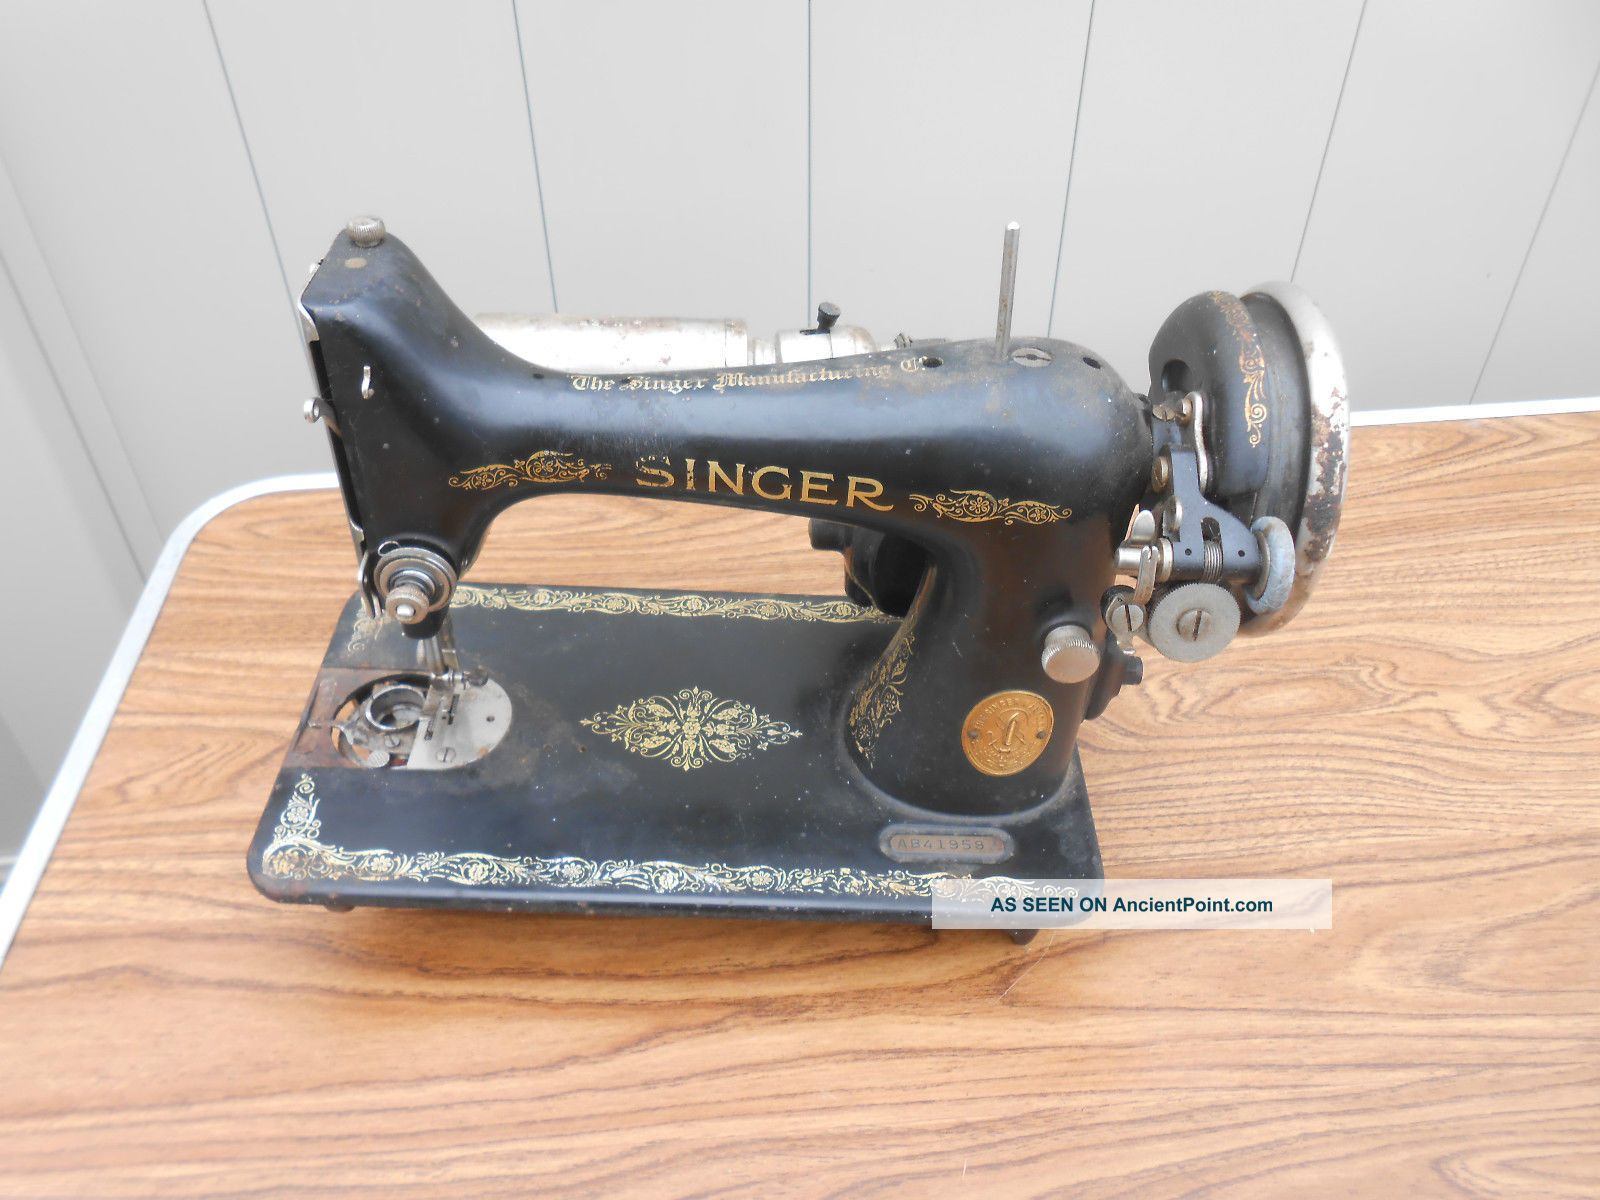 L655 - Vintage 1926 Singer Model 99 Sewing Machine For Restore/parts Sewing Machines photo